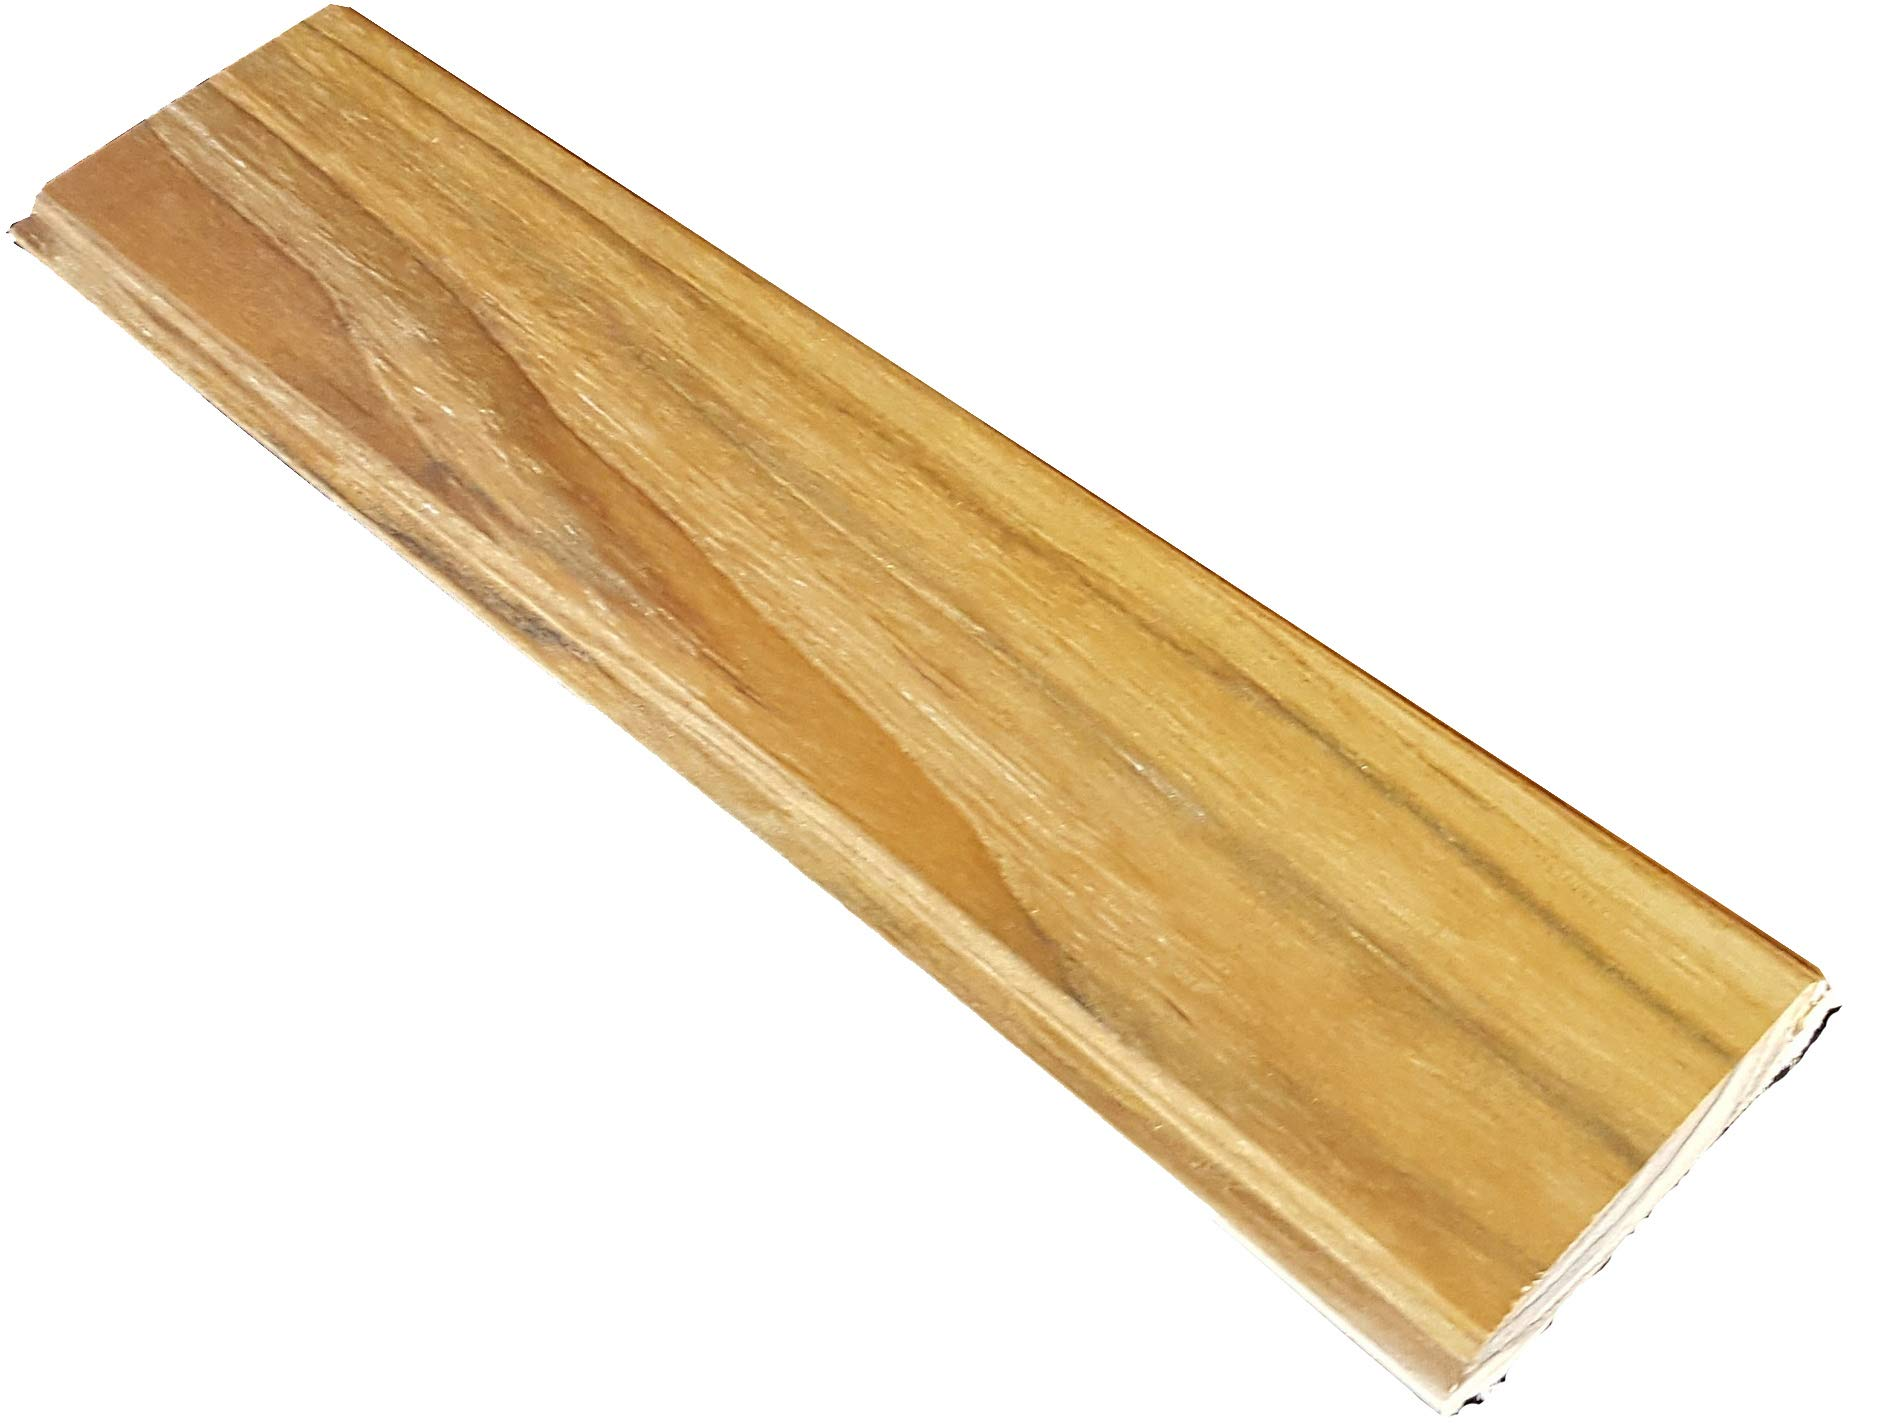 84'' Long Teak Wood Tongue and Groove- 5 Square feet, 100% Heartwood Teak by Diamond Tropical Hardwoods